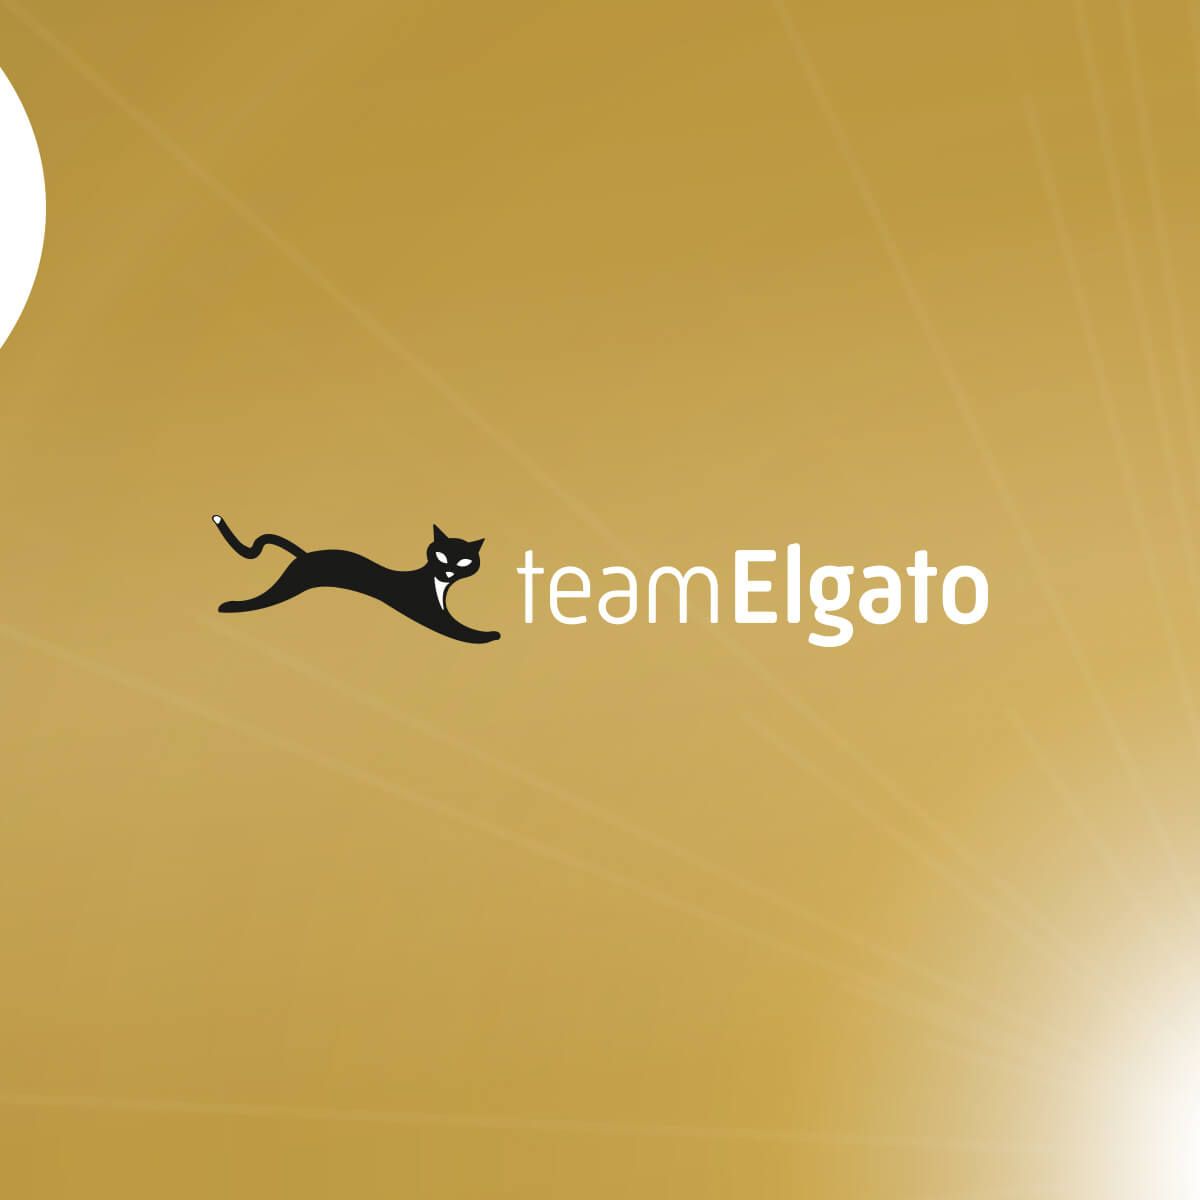 teamElgato – GERMAN DESIGN AWARD WINNER 2018